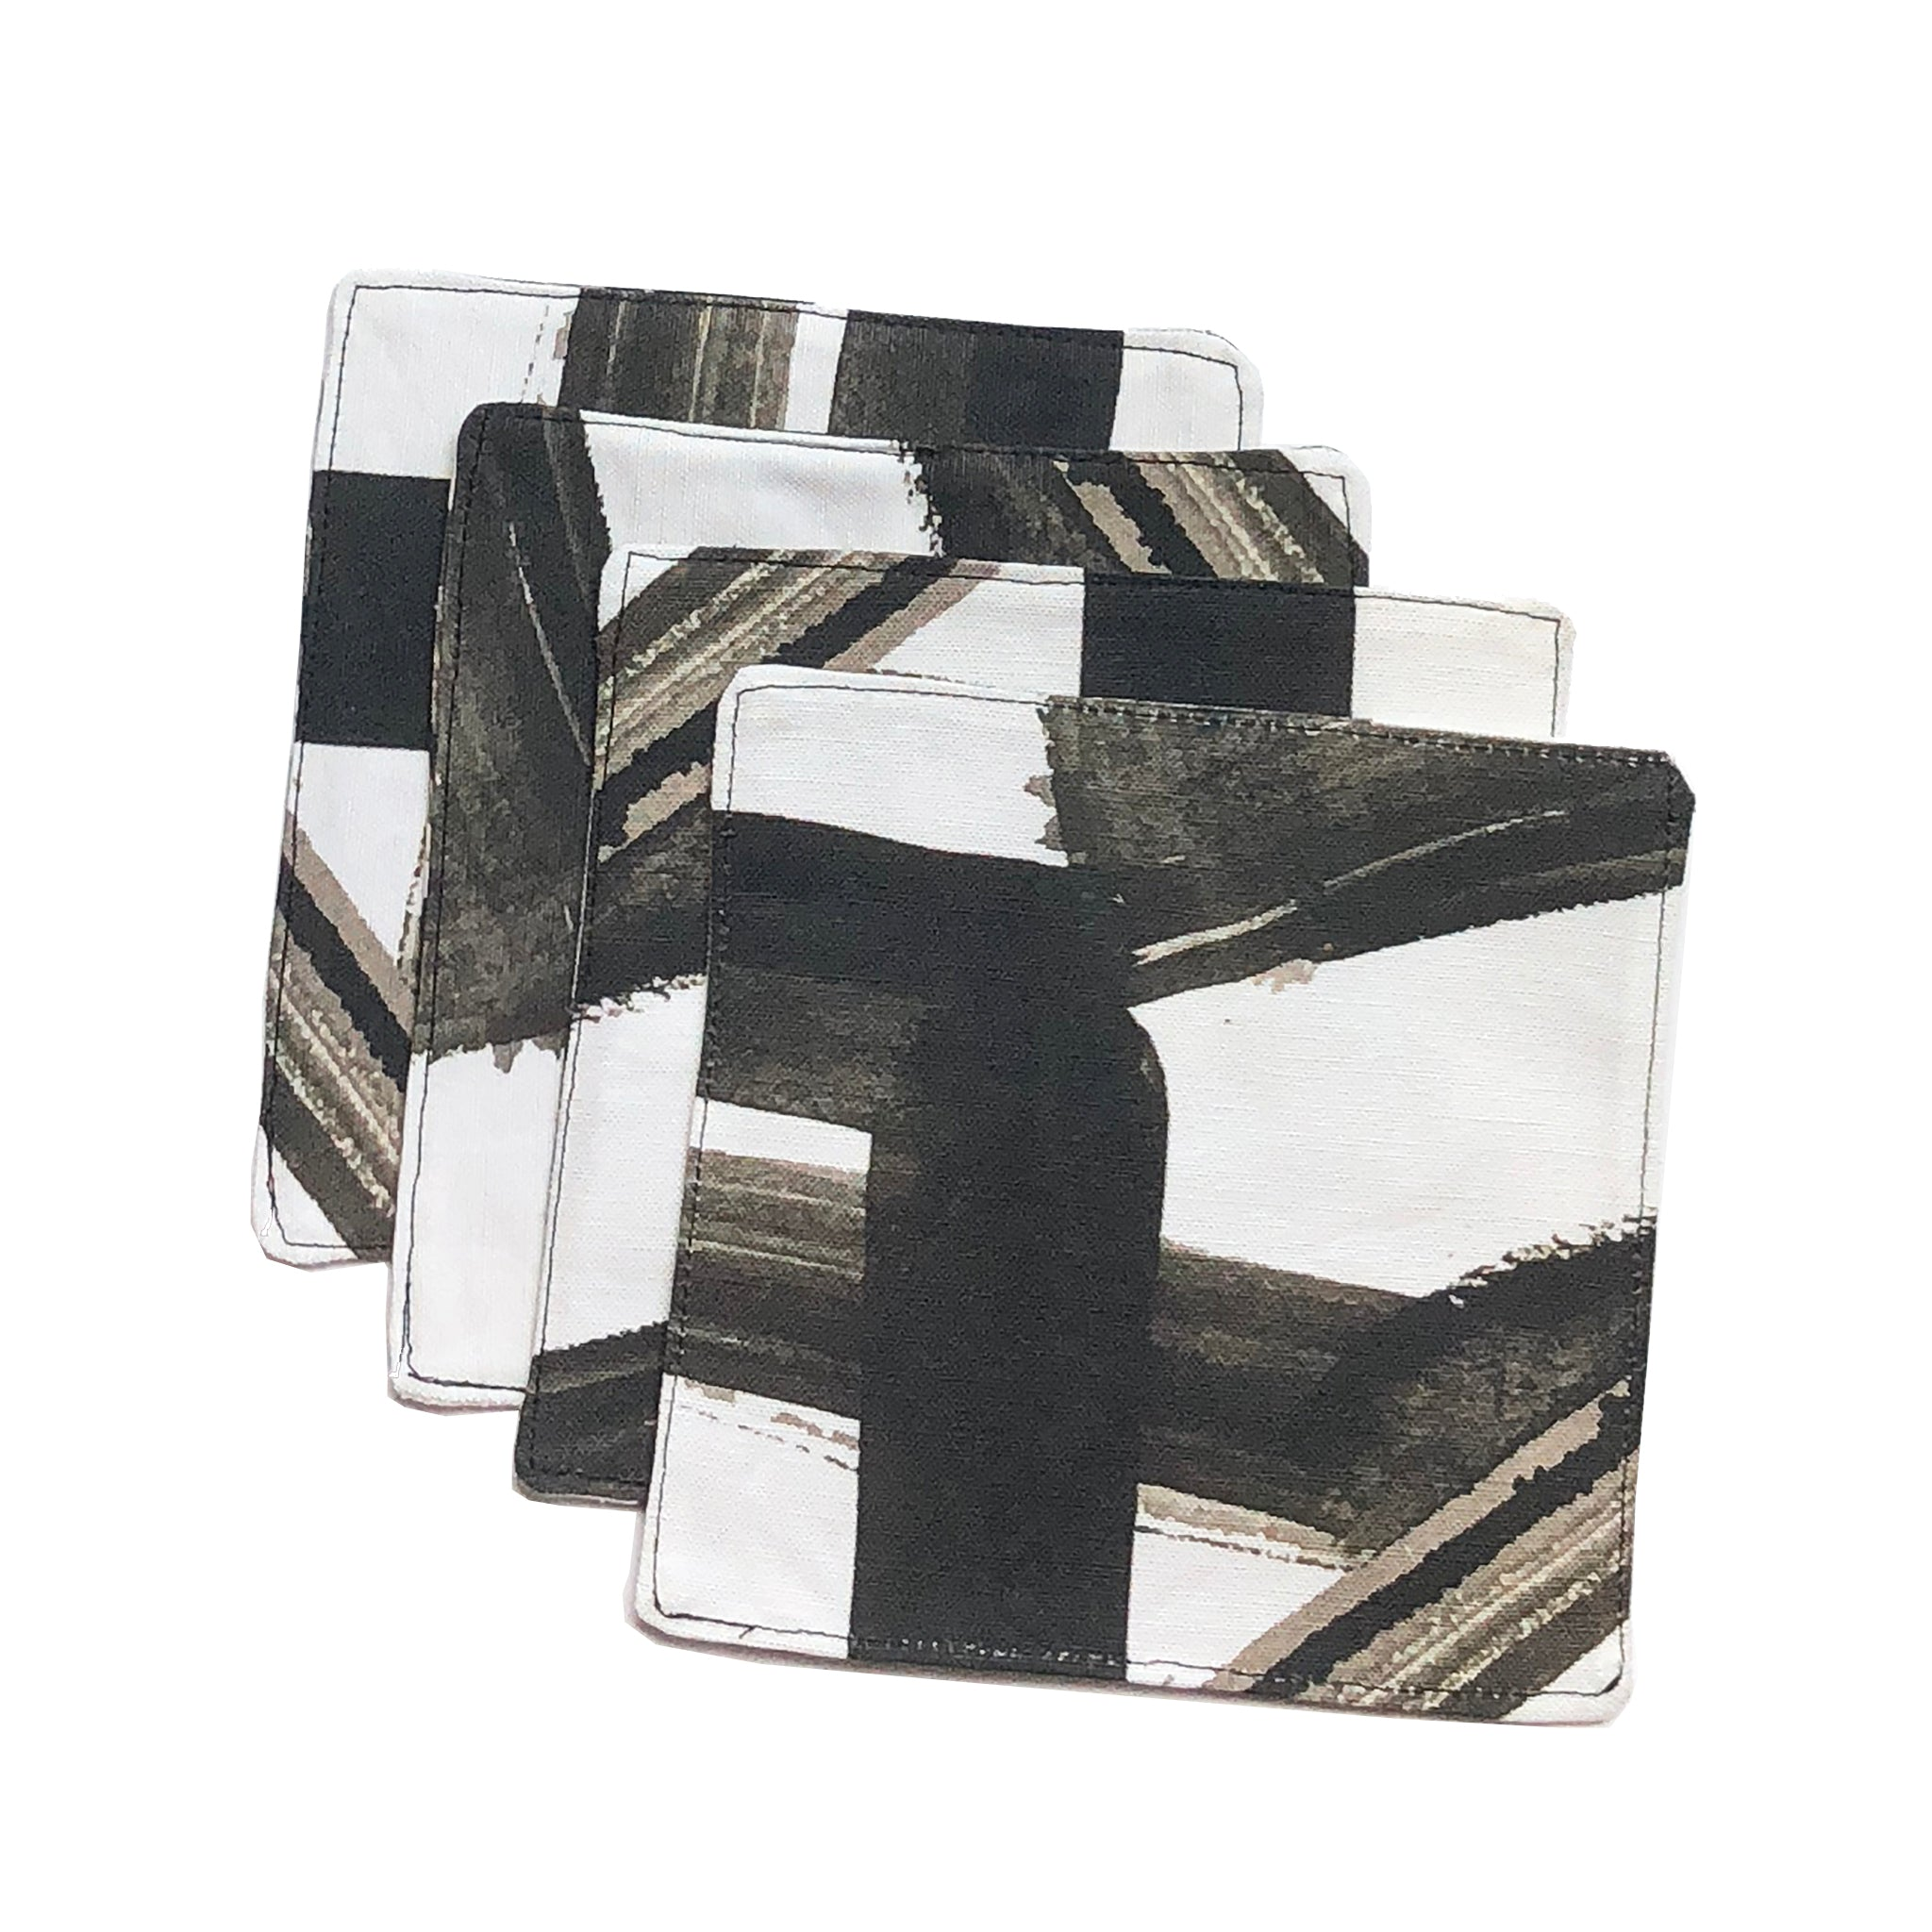 Carmella White Black Cocktail Napkin Set